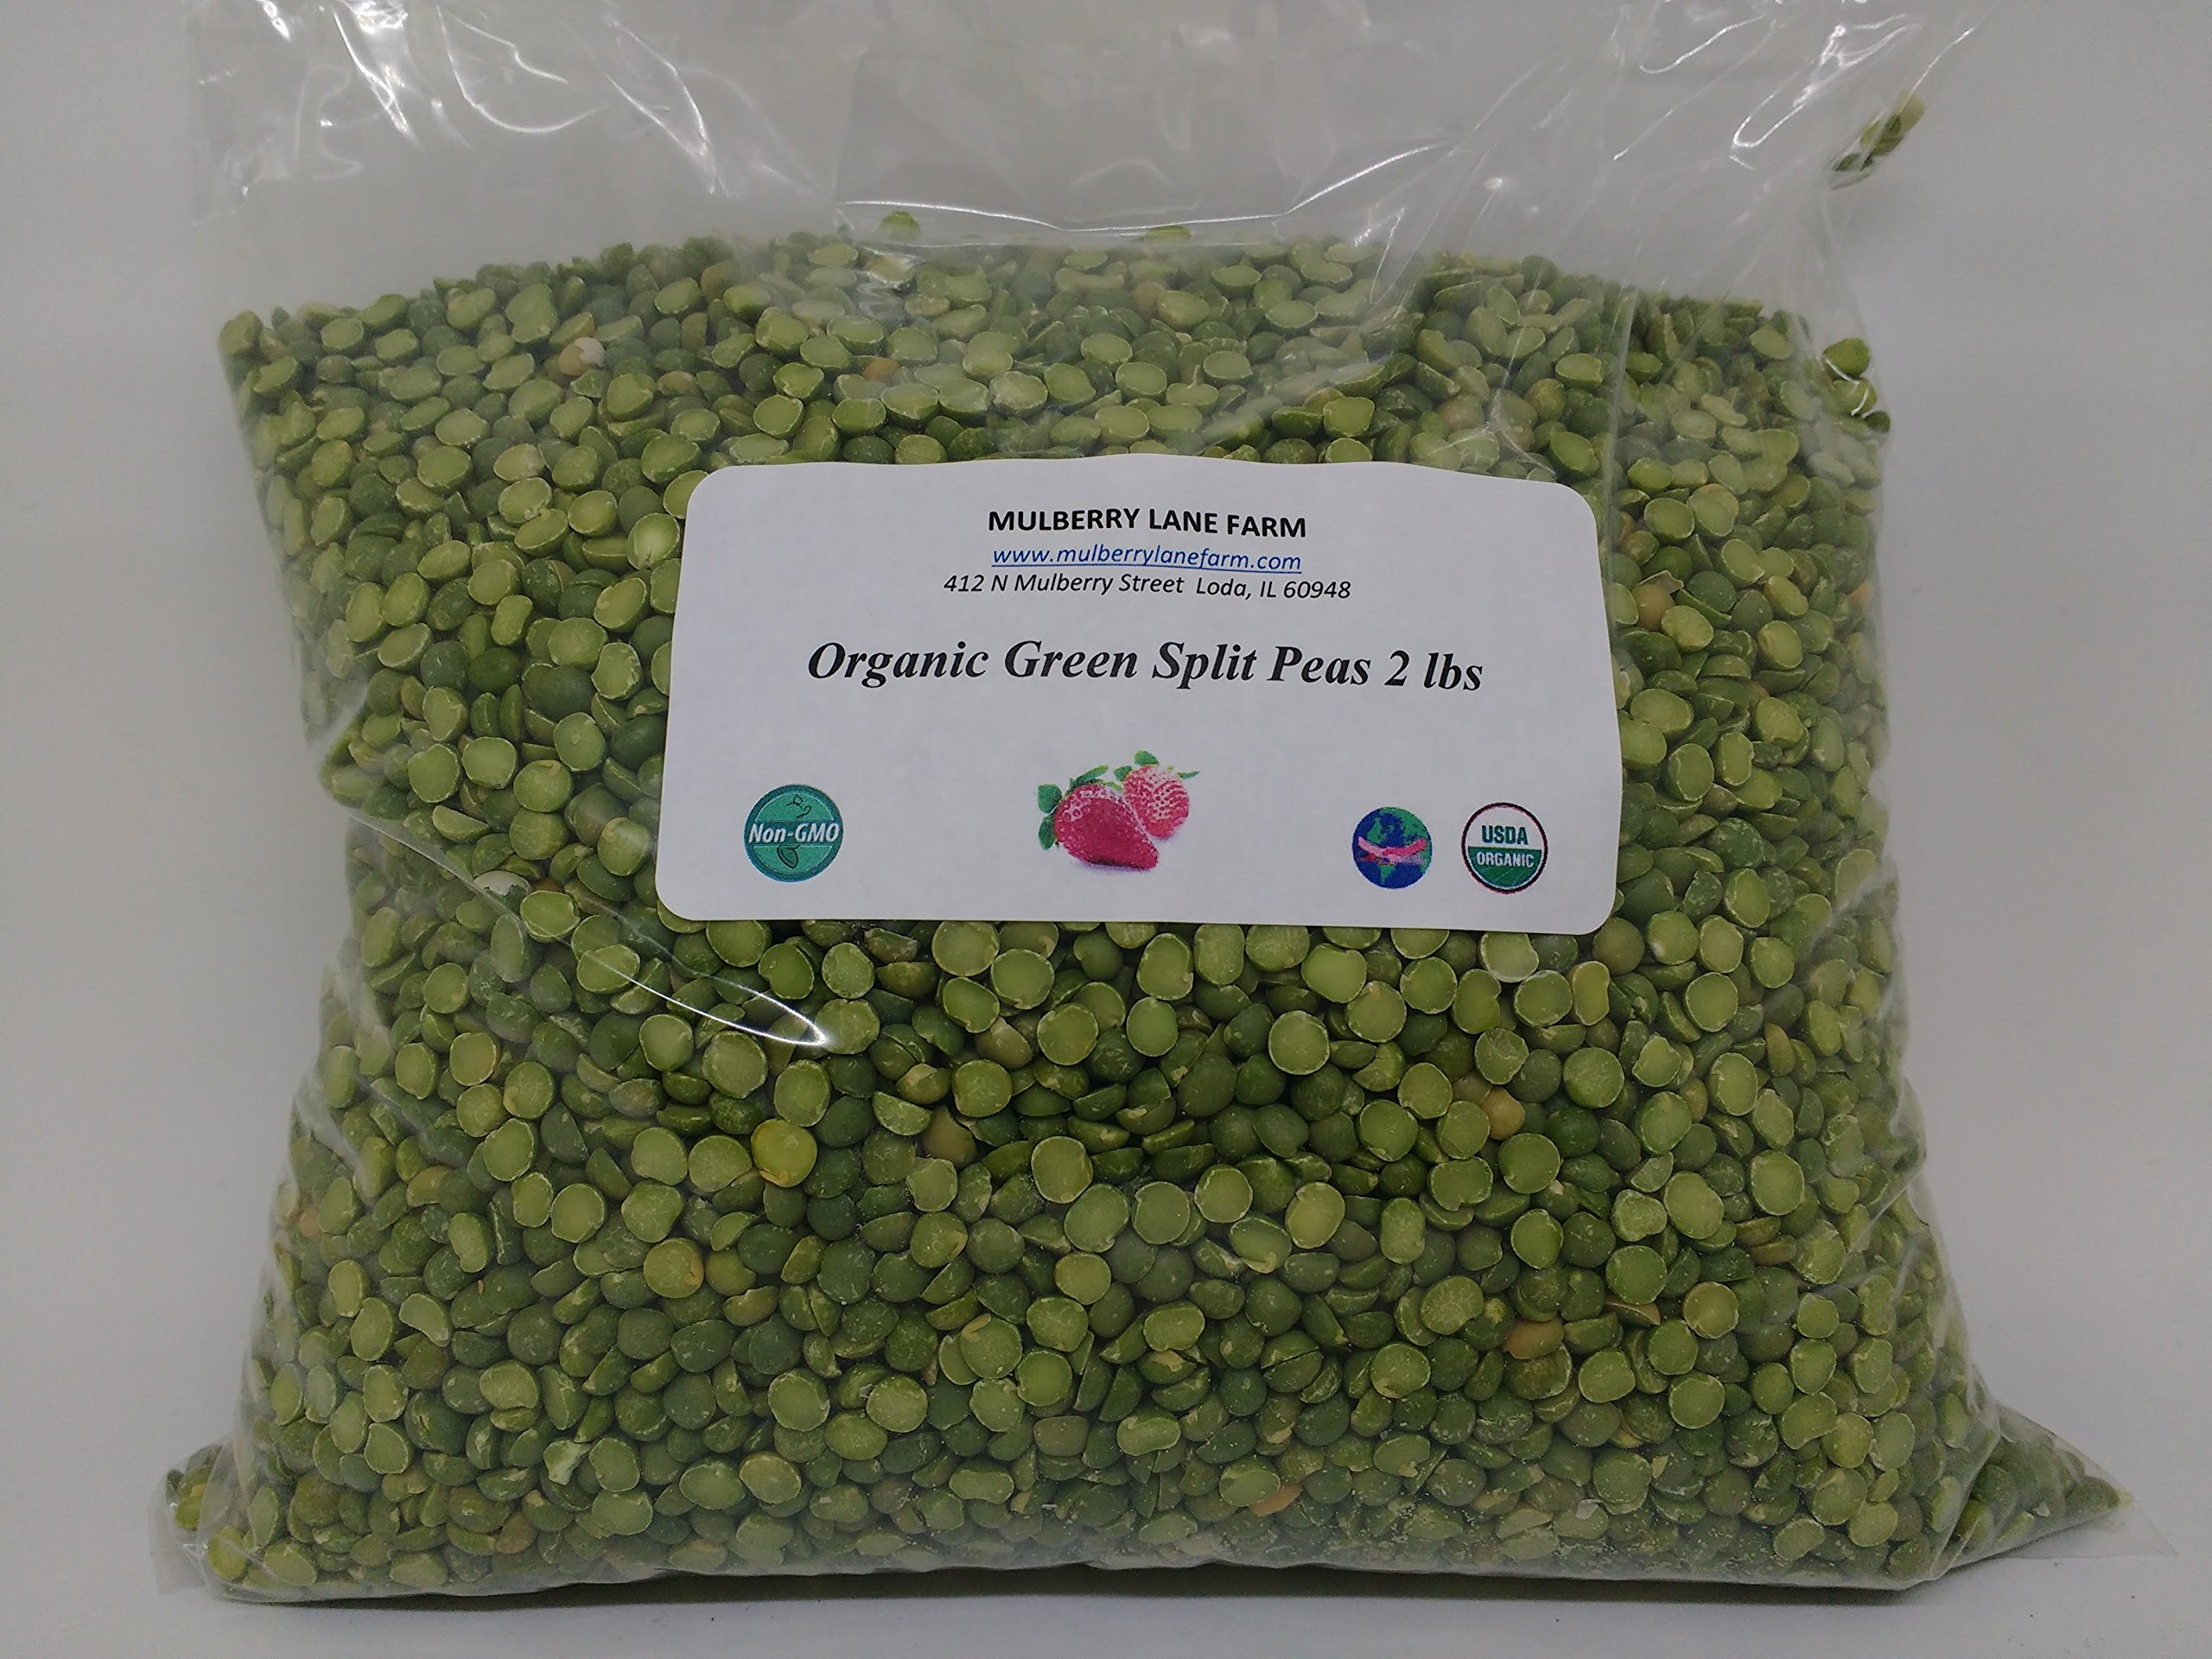 Green Split Peas 2 lbs (two pounds) USDA Certified Organic, Non-GMO, BULK